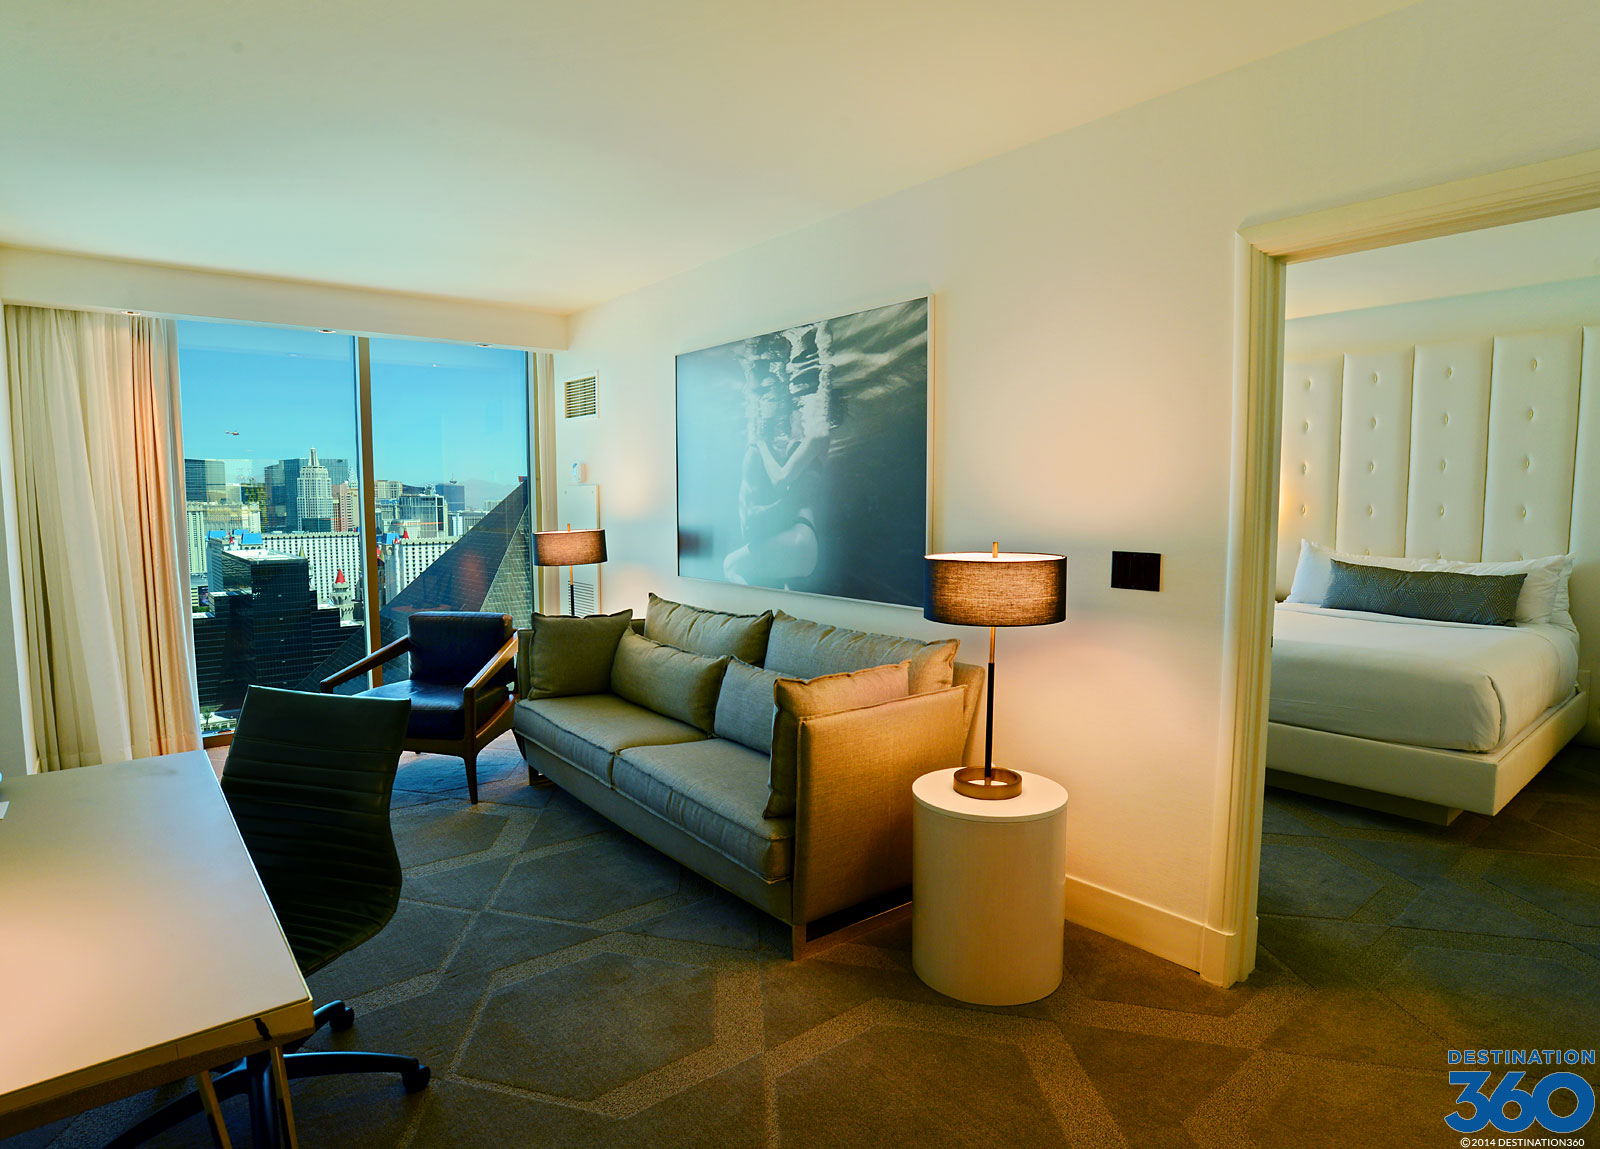 Delano Rooms Las Vegas All Suite Hotel Mandalay Bay Suites